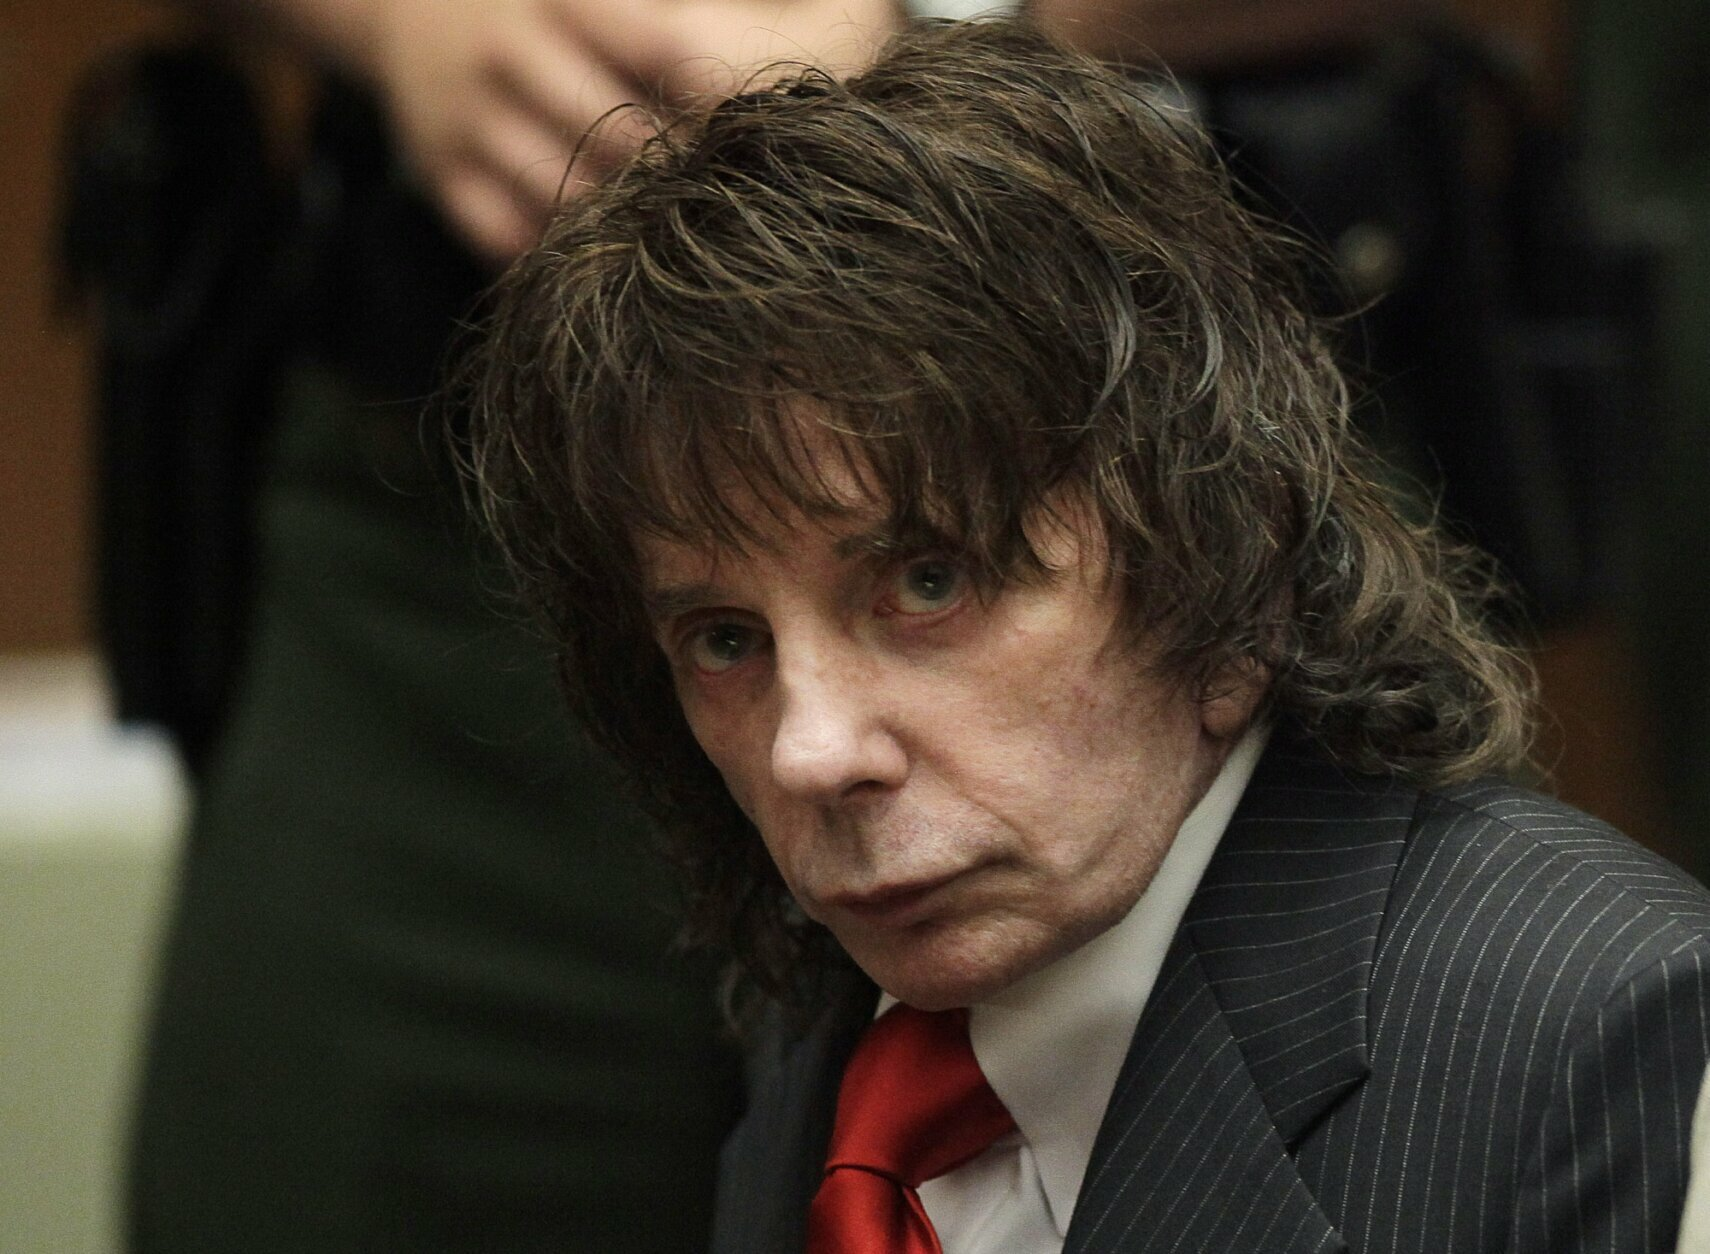 """<p><a href=""""https://wtop.com/national/2021/01/phil-spectors-death-resurrects-mixed-reaction-from-skeptics/"""" target=""""_blank"""" rel=""""noopener"""">Read Phil Spector&#8217;s obituary</a></p>"""